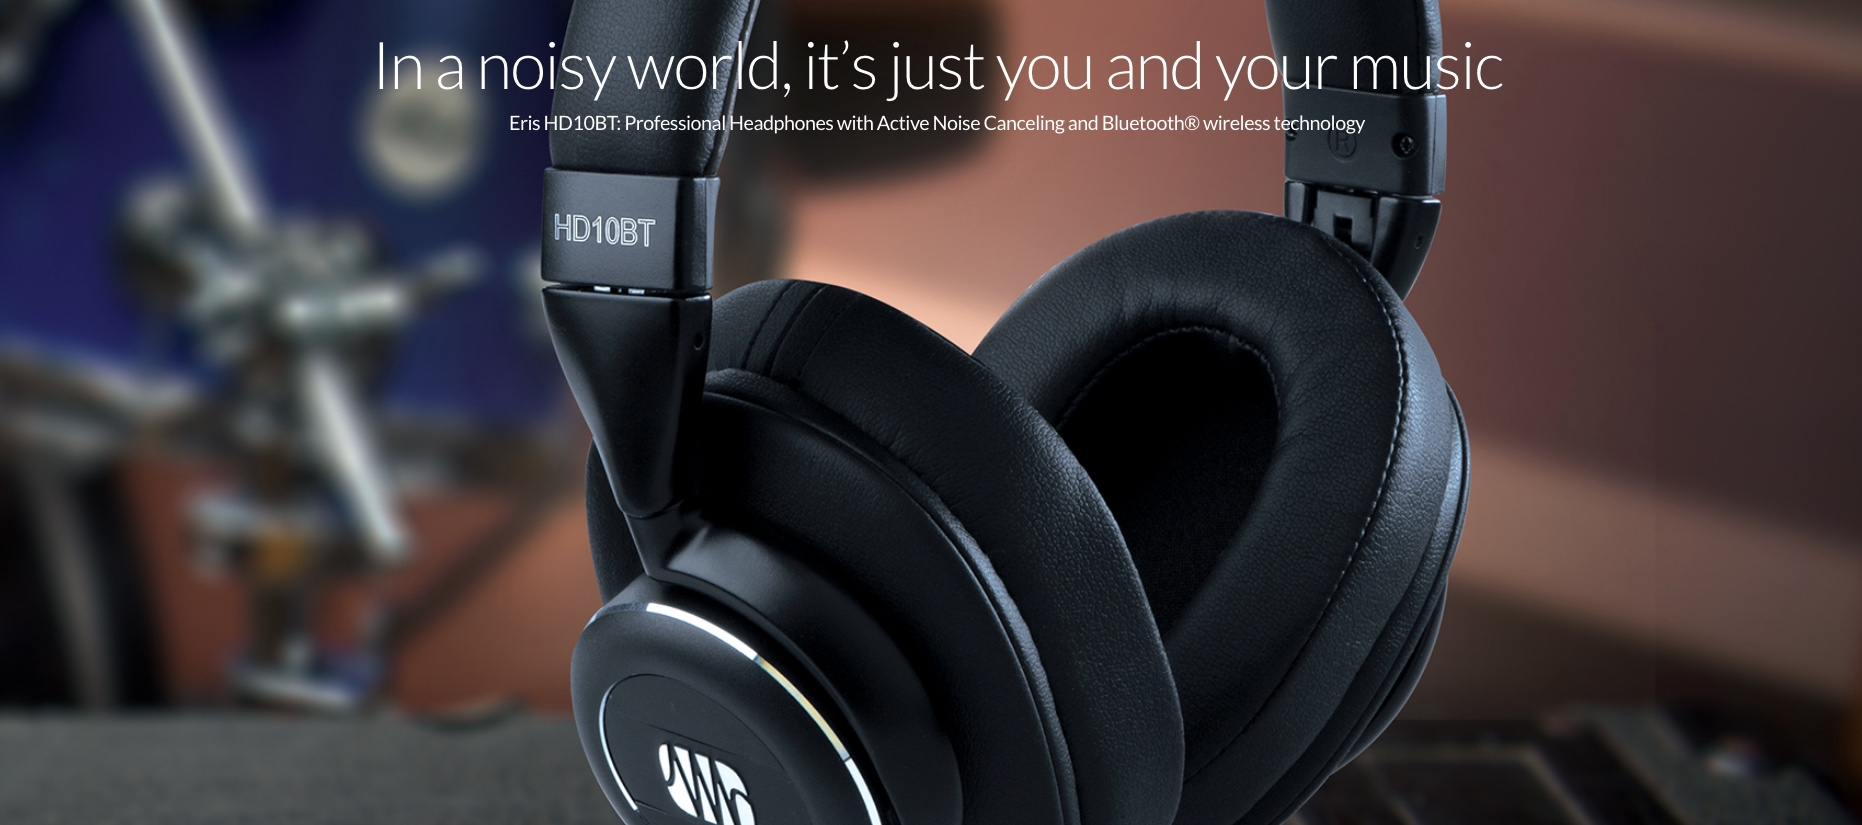 New PreSonus Eris HD10BT Headphones